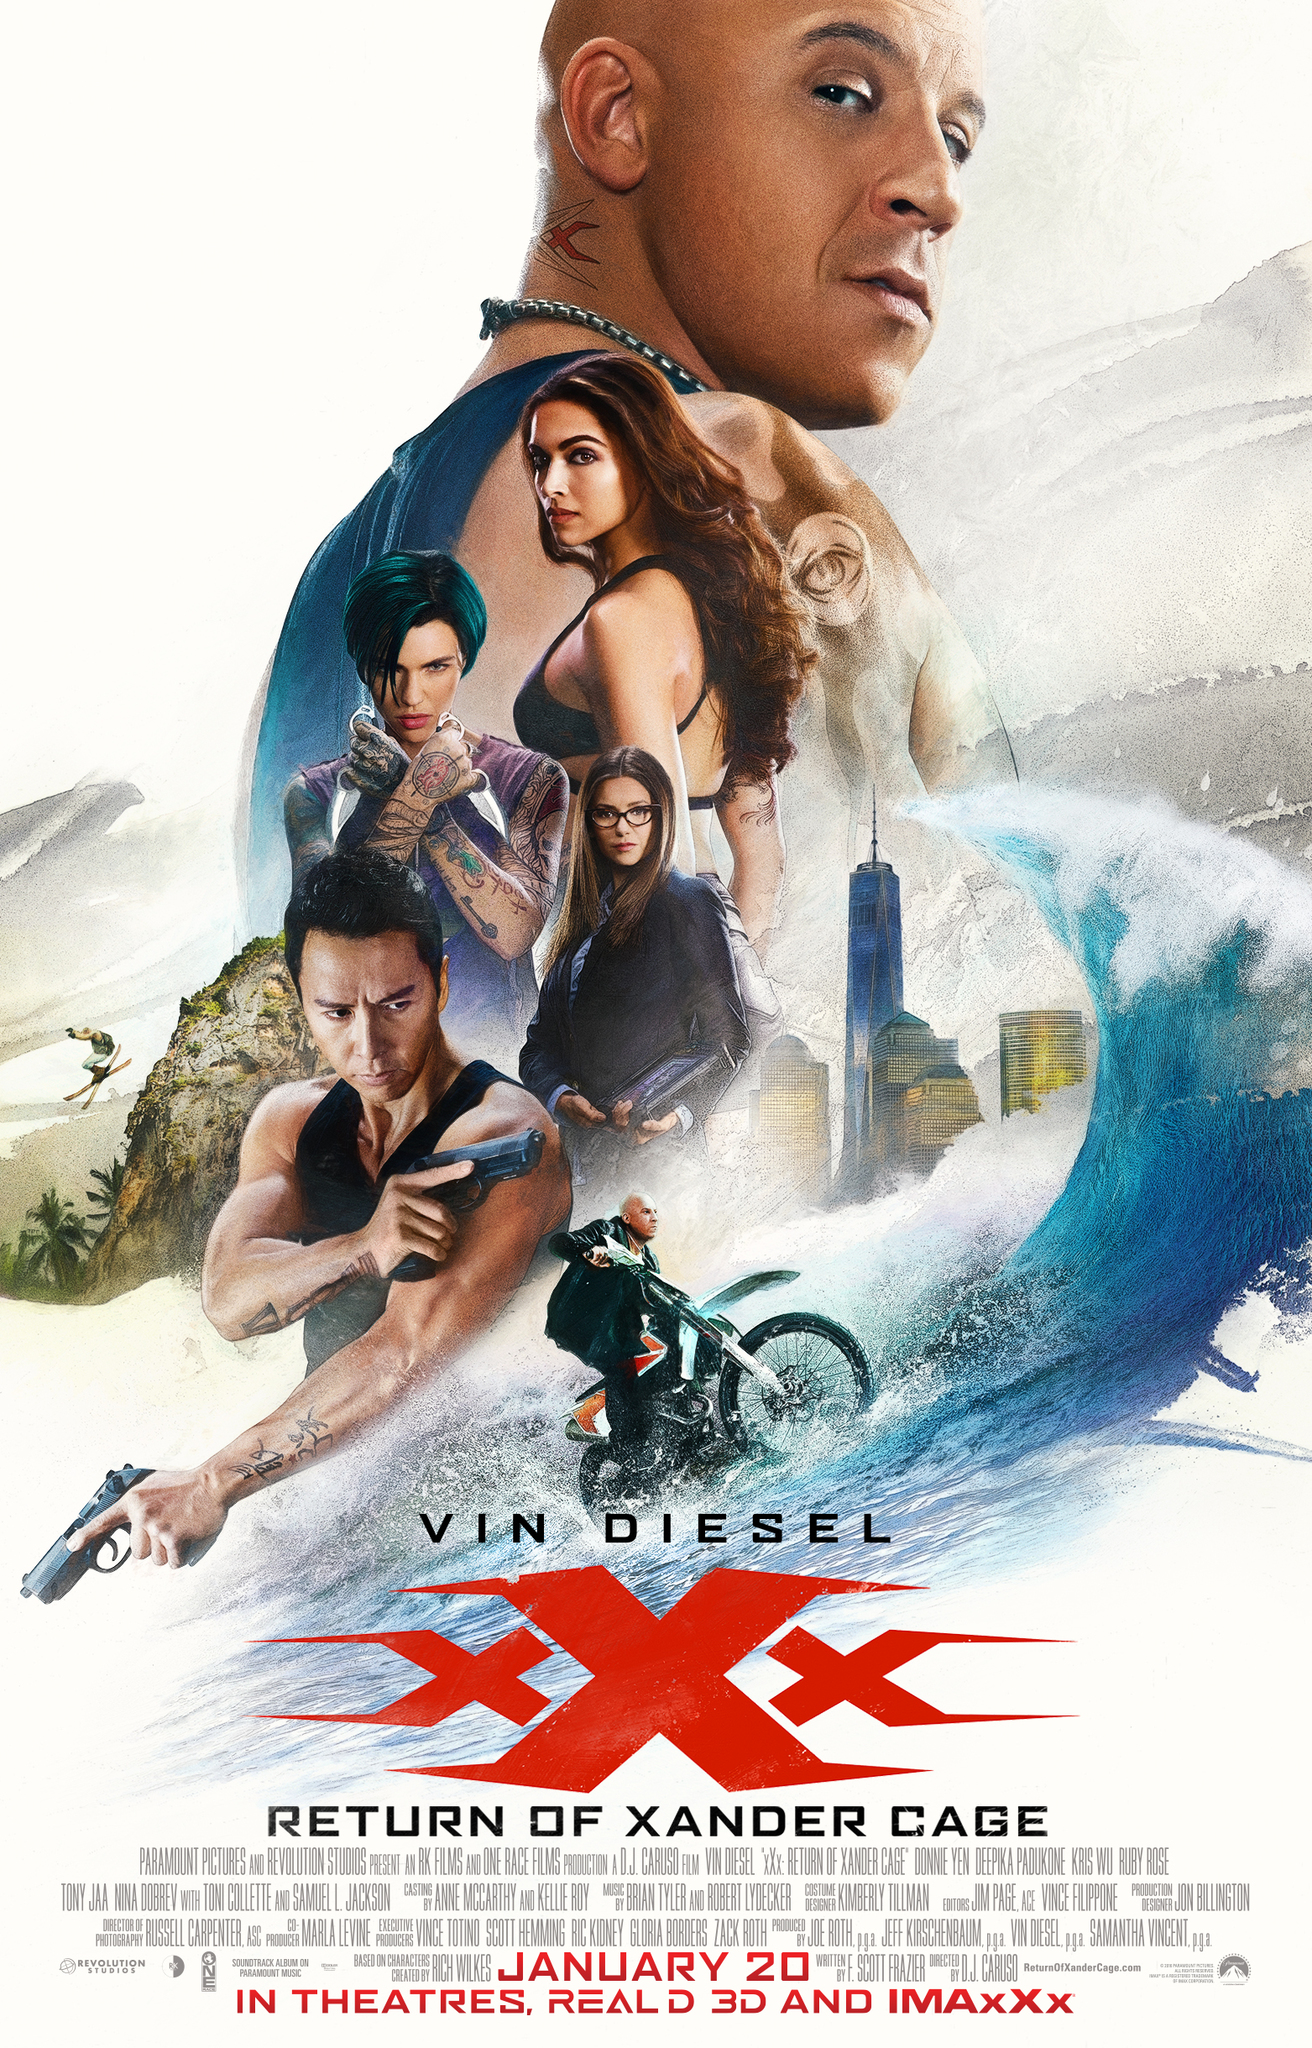 xXx: Return of Xander Cage (2017) Technical Specifications